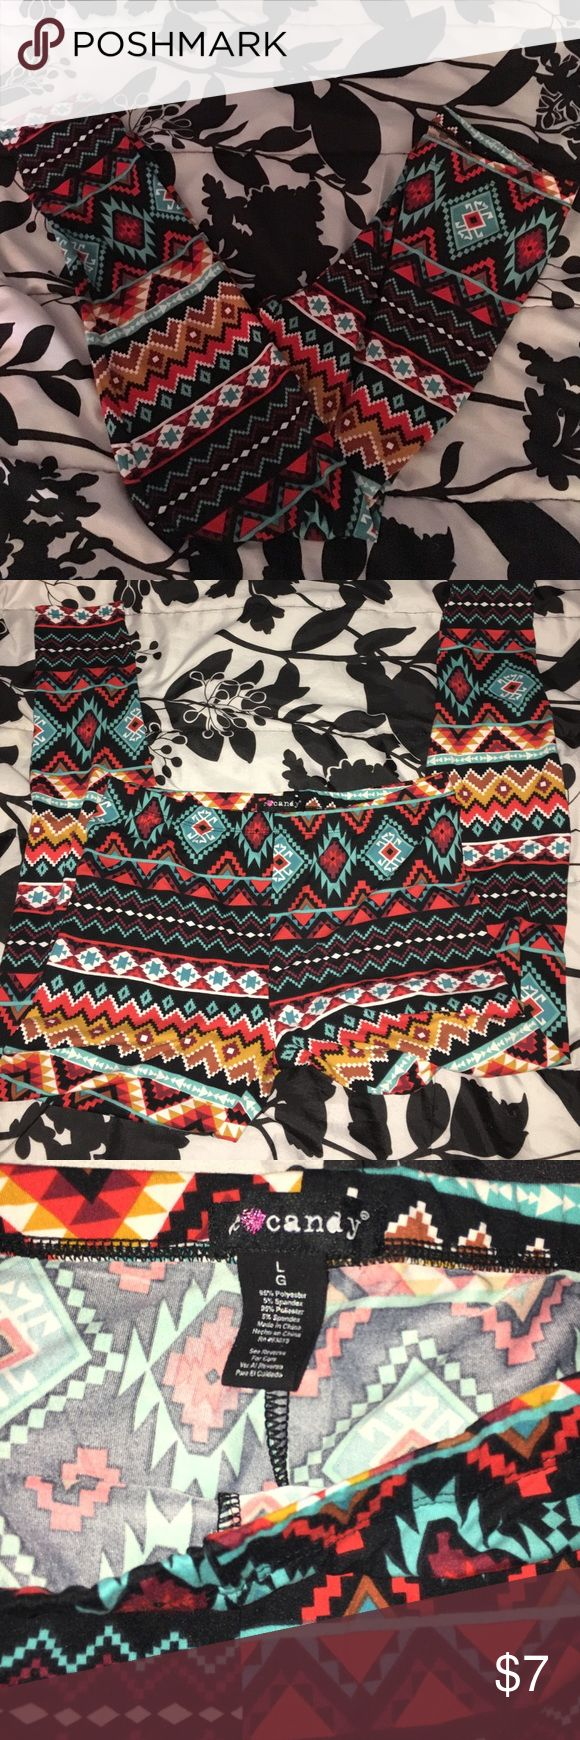 Tribal print red/black leggings never used Soft Tribal print leggings in large. Just tried it in on and took the tags off. Brand: eyecandy eyecandy Pants Leggings